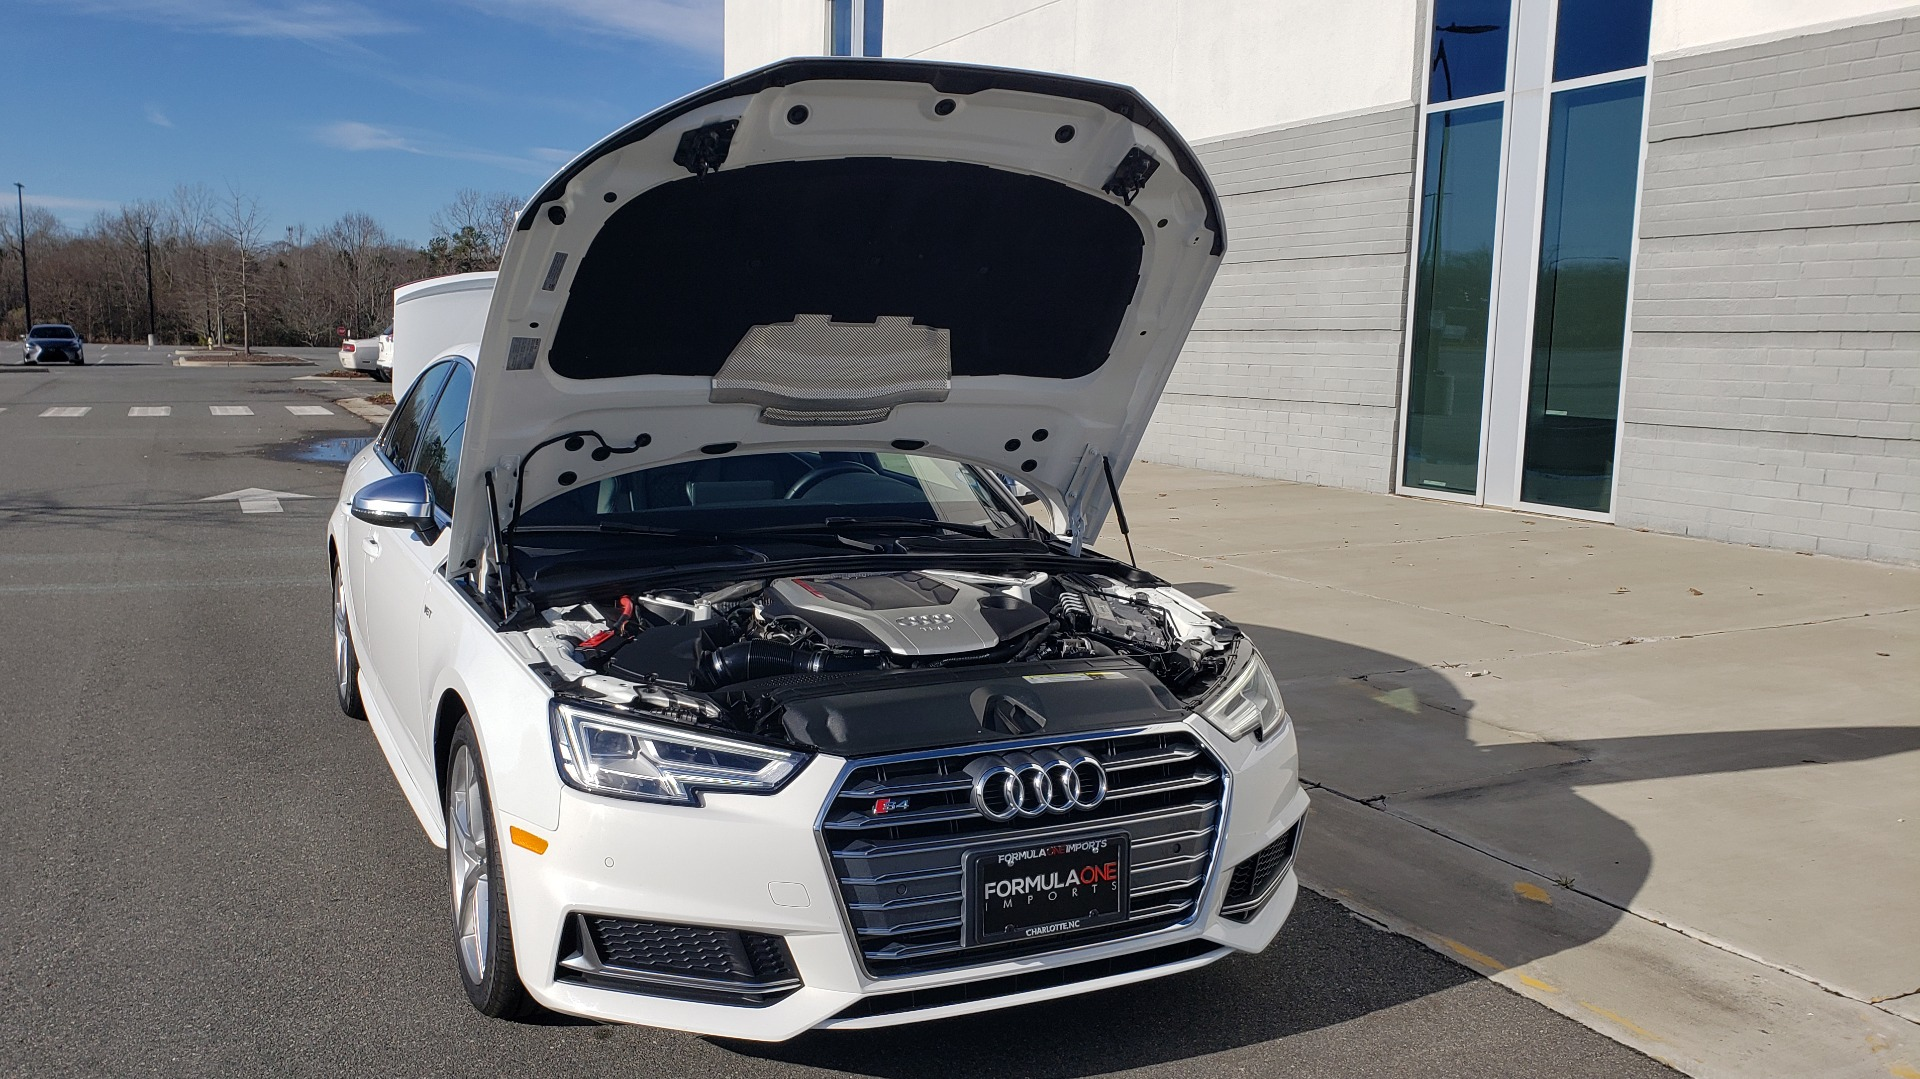 Used 2018 Audi S4 PREMIUM PLUS / TECH PKG / NAV / CLD WTHR / REARVIEW for sale Sold at Formula Imports in Charlotte NC 28227 15